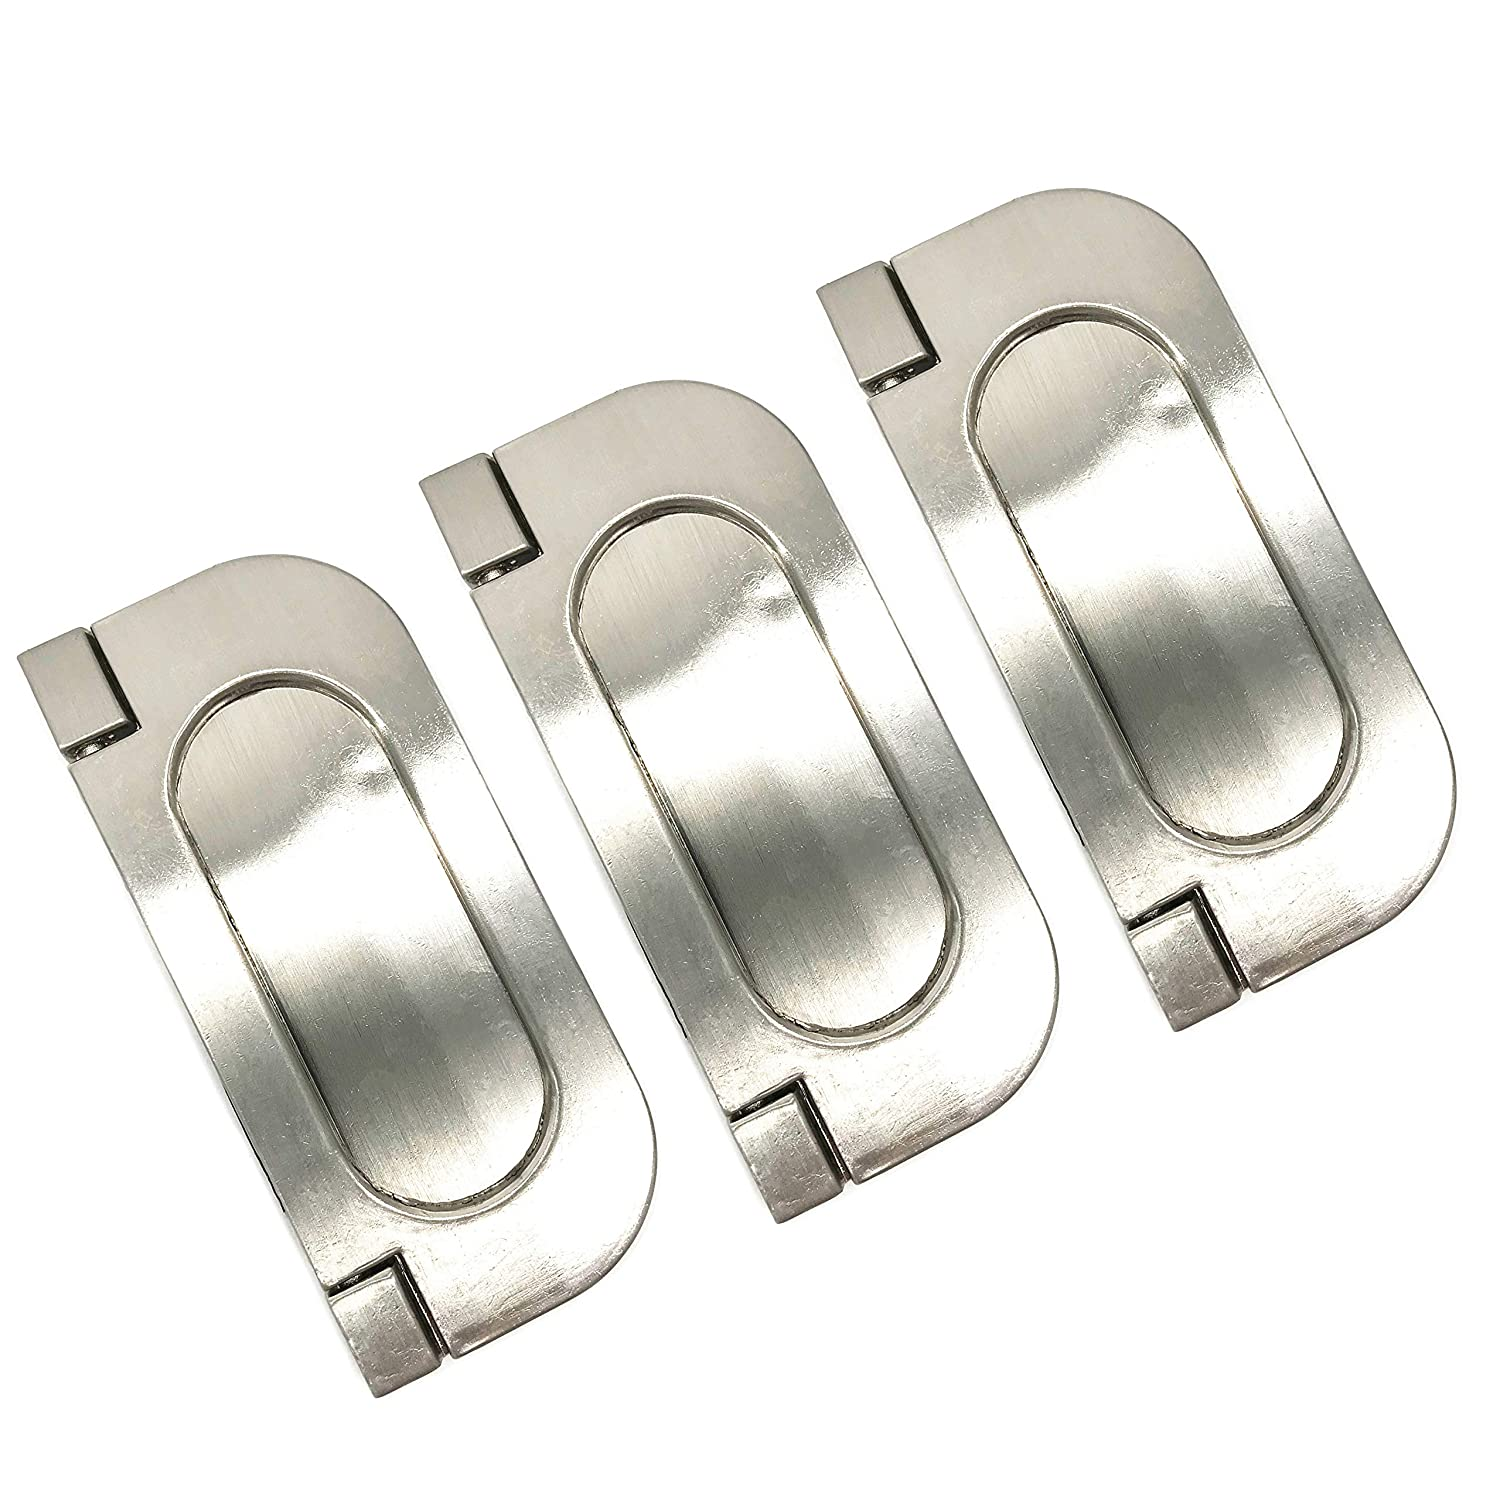 XMHF Recessed Type Furniture Wardrobe Drawer Pull Handle Silver Flat Cabinet Flush Ring Pull 3pcs